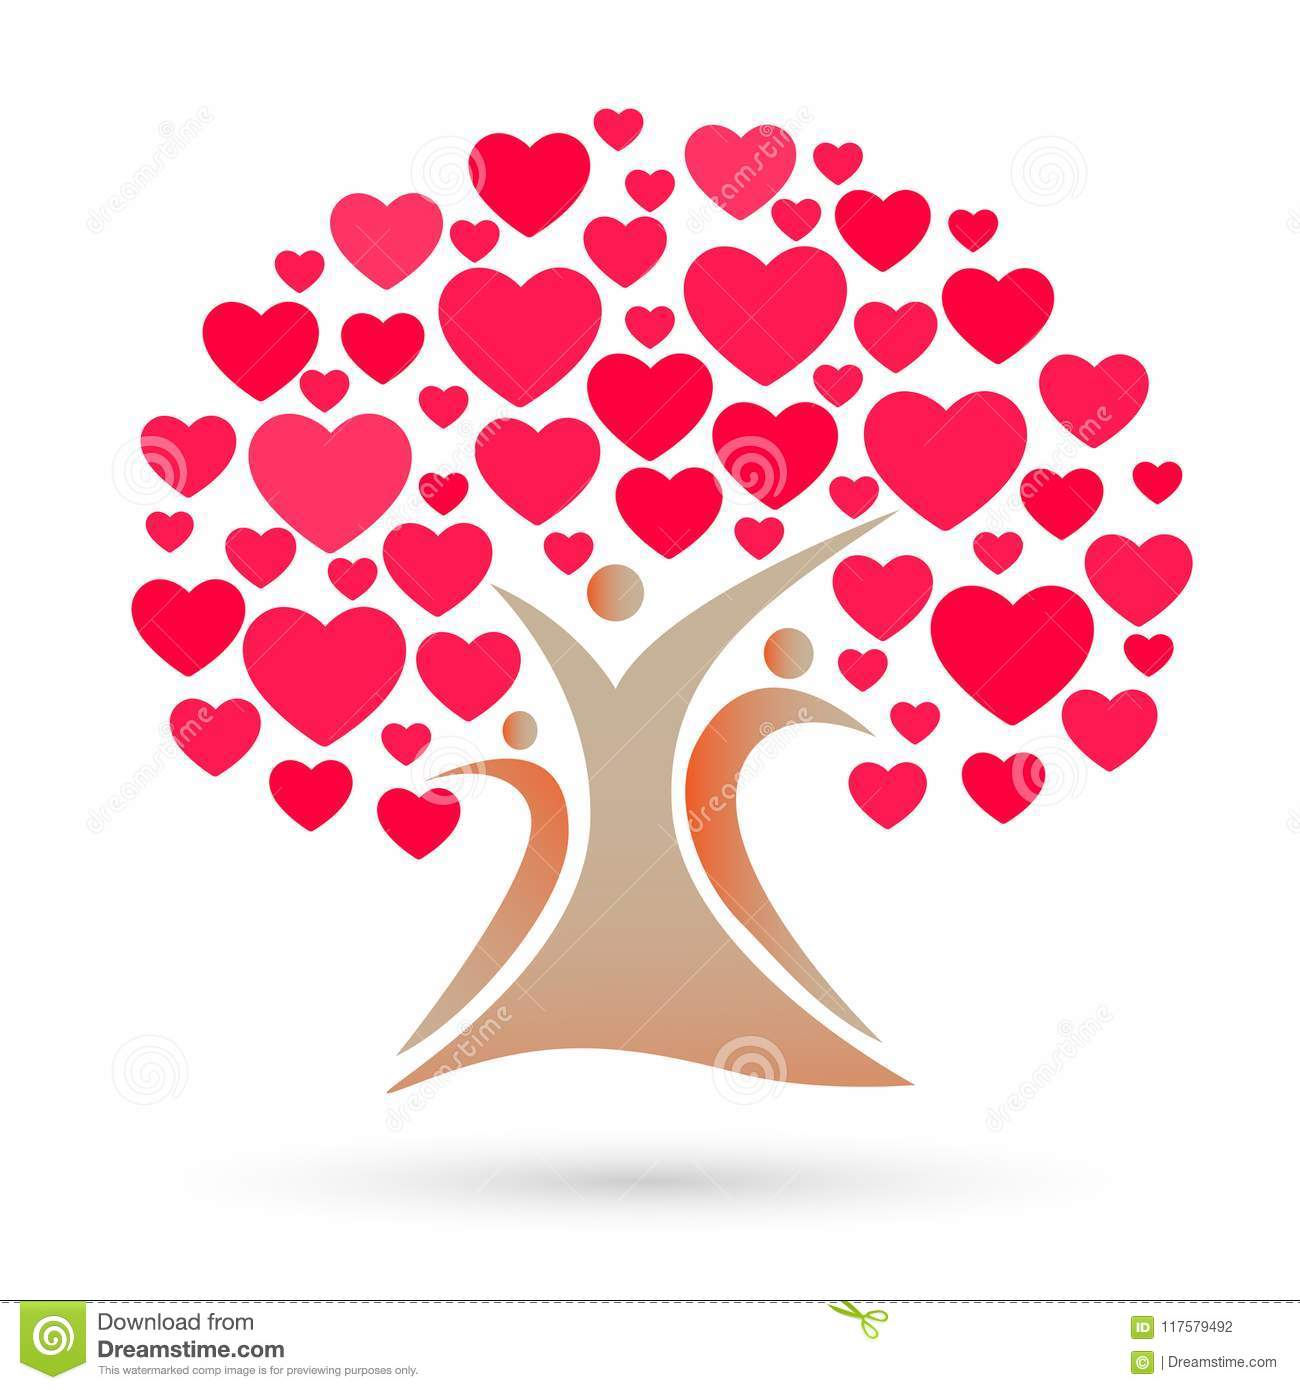 Family tree logo, family, parent, kids, red heart, love, parenting, care, symbol icon design vector